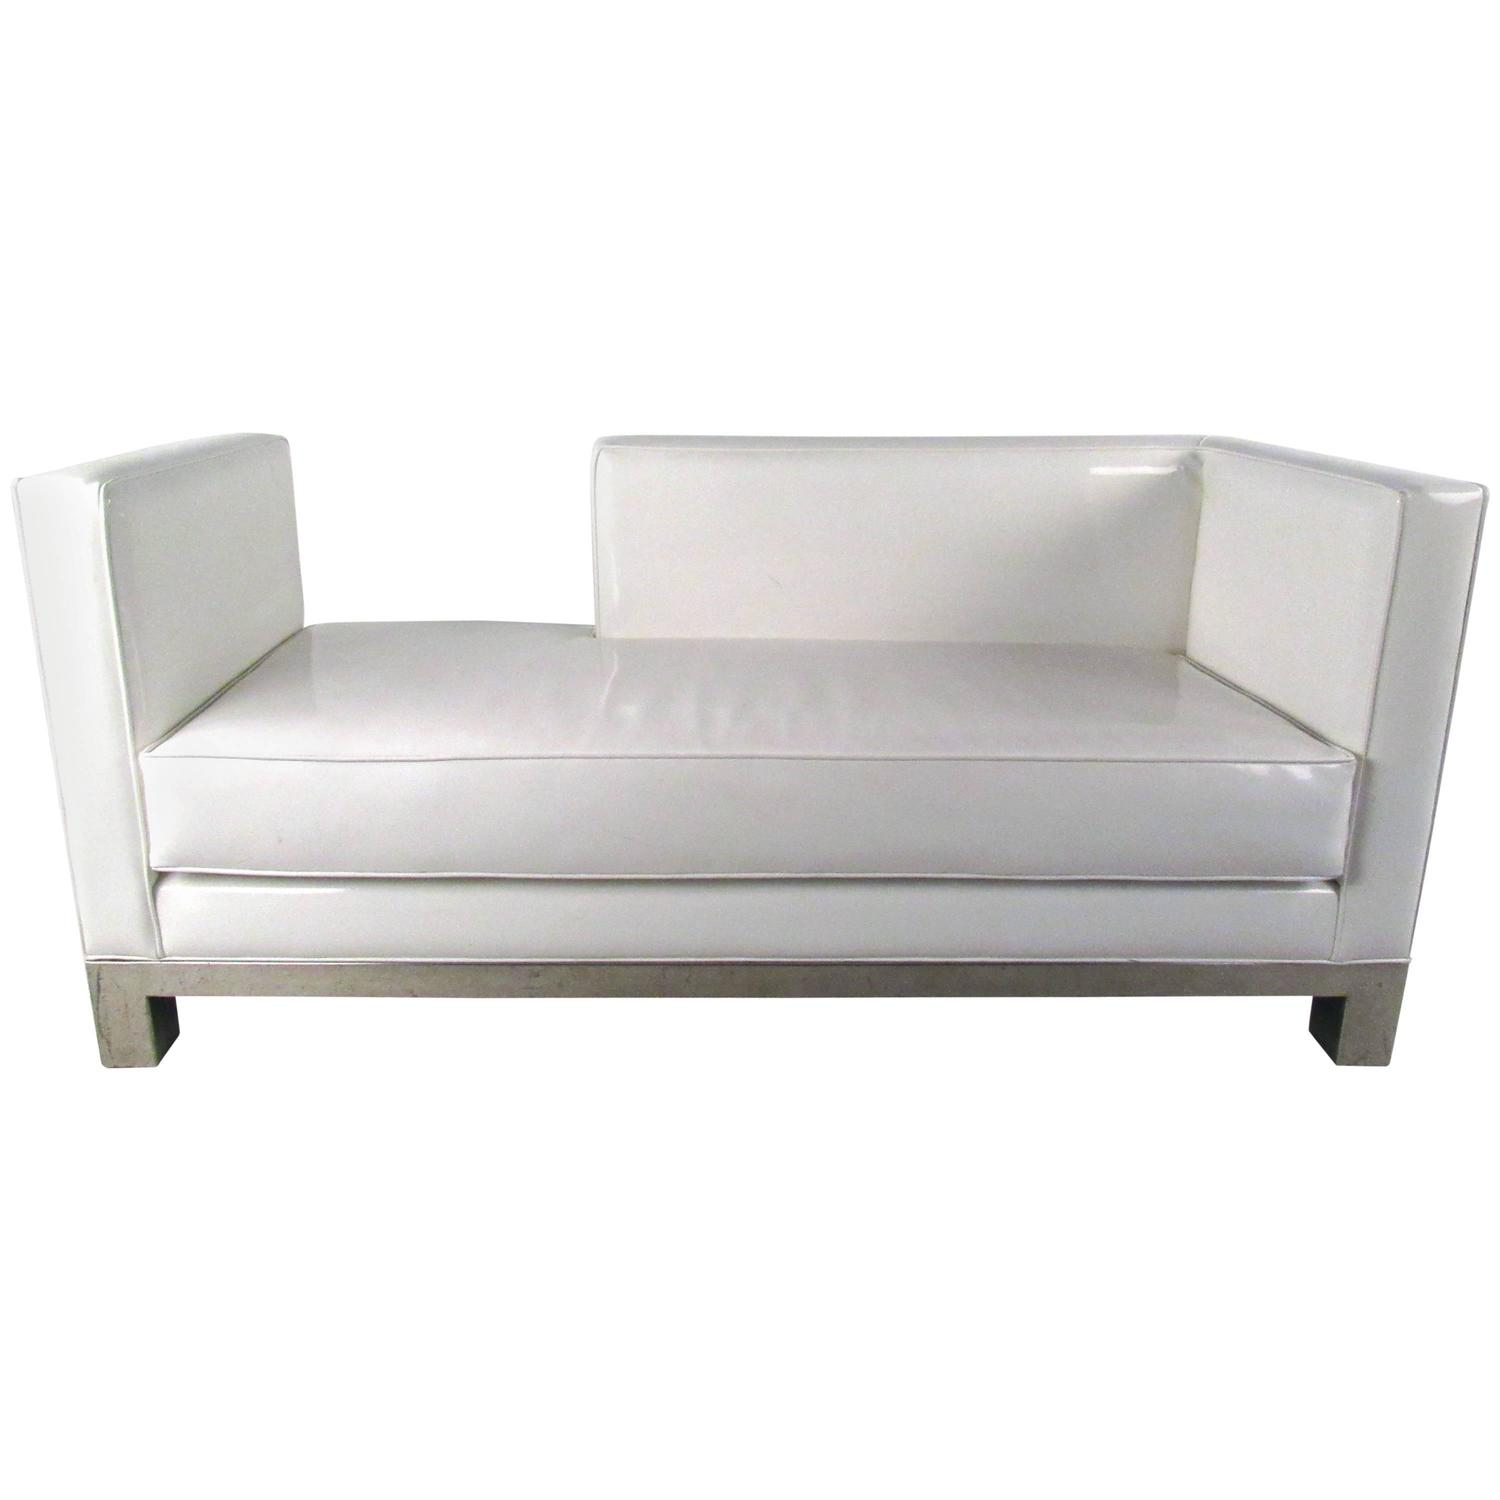 Modern chaise lounge sofa flexform sofa modern 3d 3ds for Chaise couches for sale